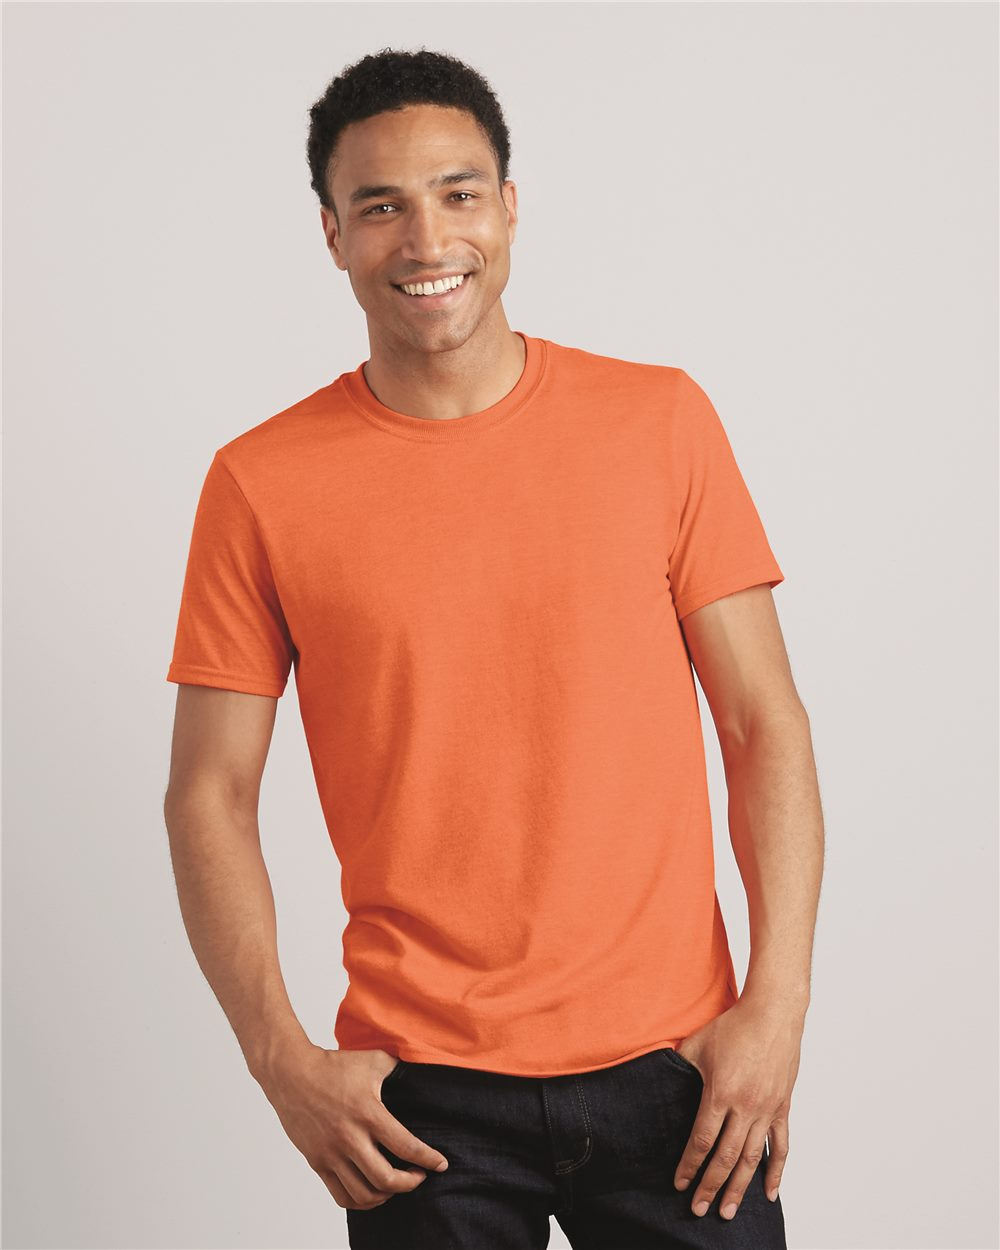 Gildan 64000 - Men's SoftStyle T-Shirt